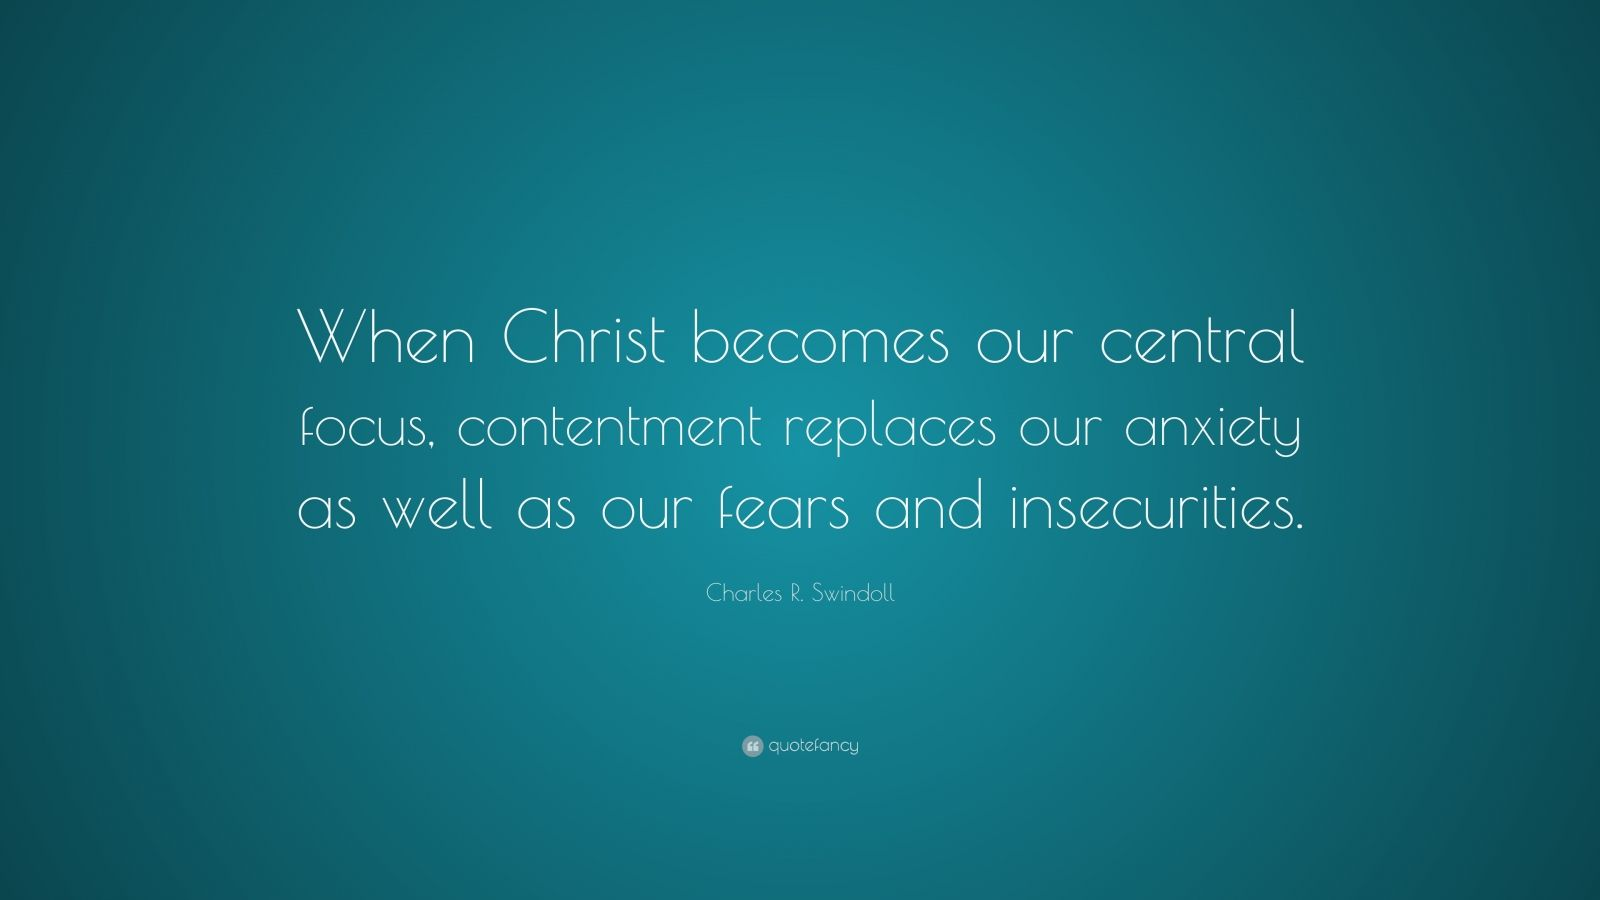 """Charles R. Swindoll Quote: """"When Christ becomes our central focus, contentment replaces our anxiety as well as our fears and insecurities."""""""